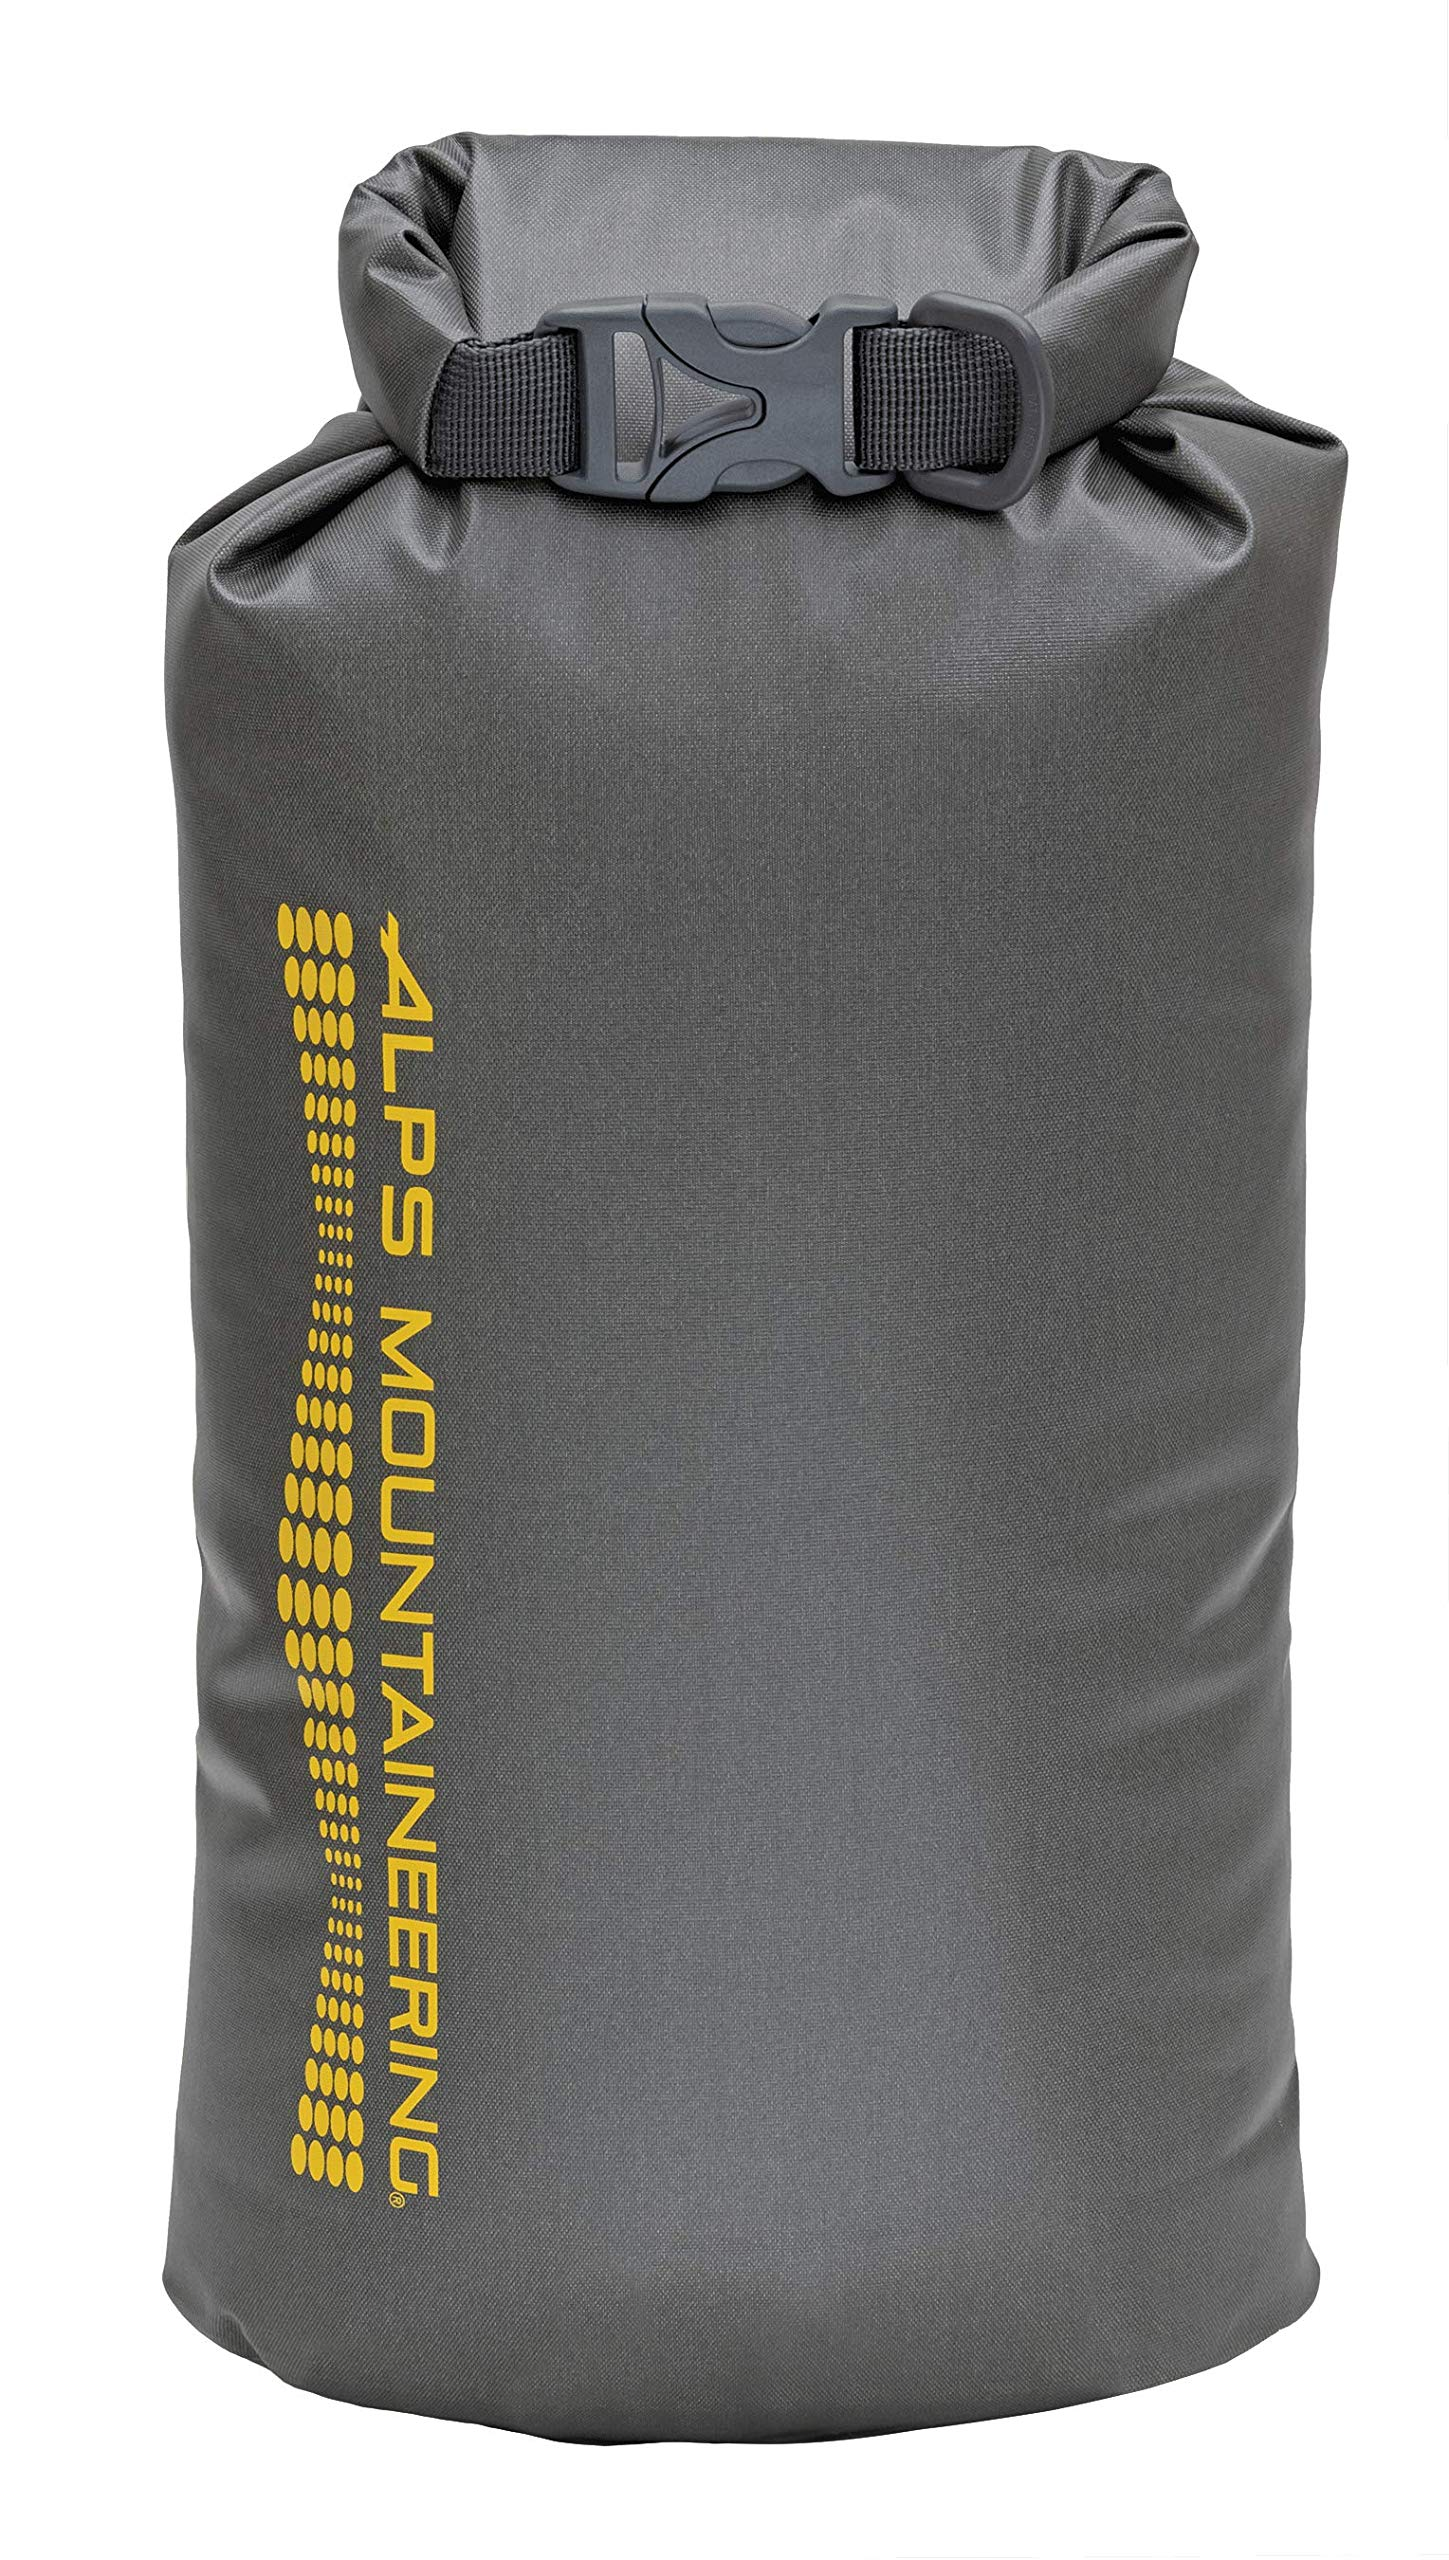 ALPS Mountaineering Dry Passage Waterproof Dry Bag 10L, Charcoal by ALPS Mountaineering